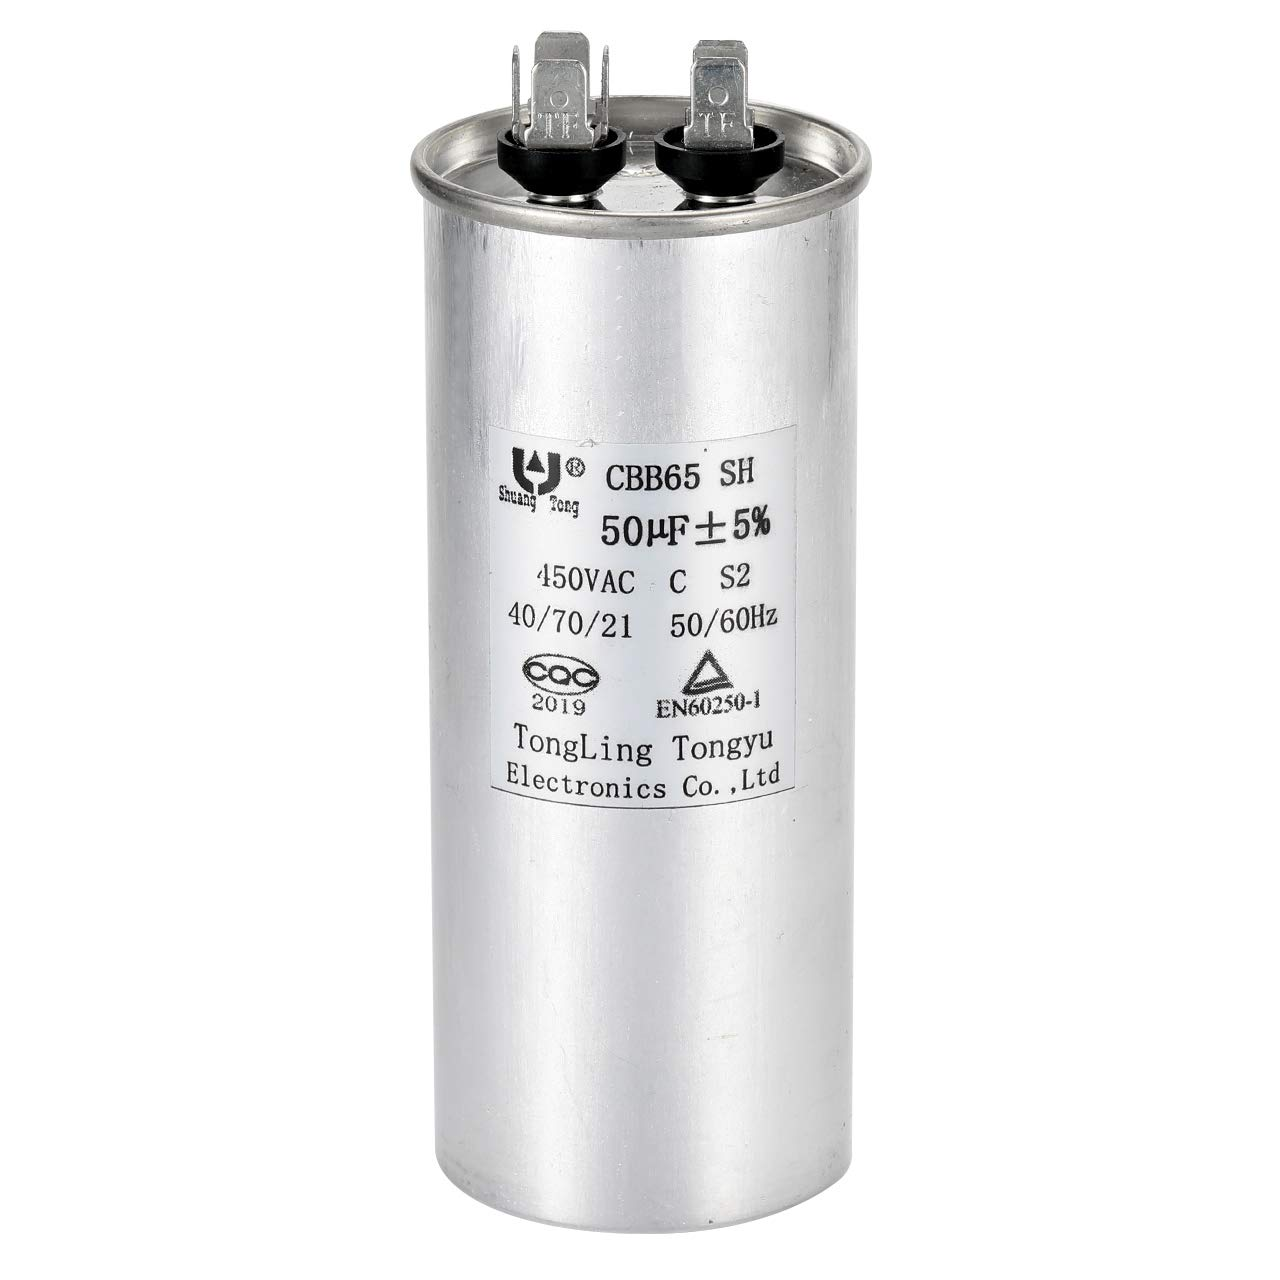 STUD TYPE WITH COVER 450V RUN CAPACITOR 5 MFD MOTOR RUNNING CAPACITOR